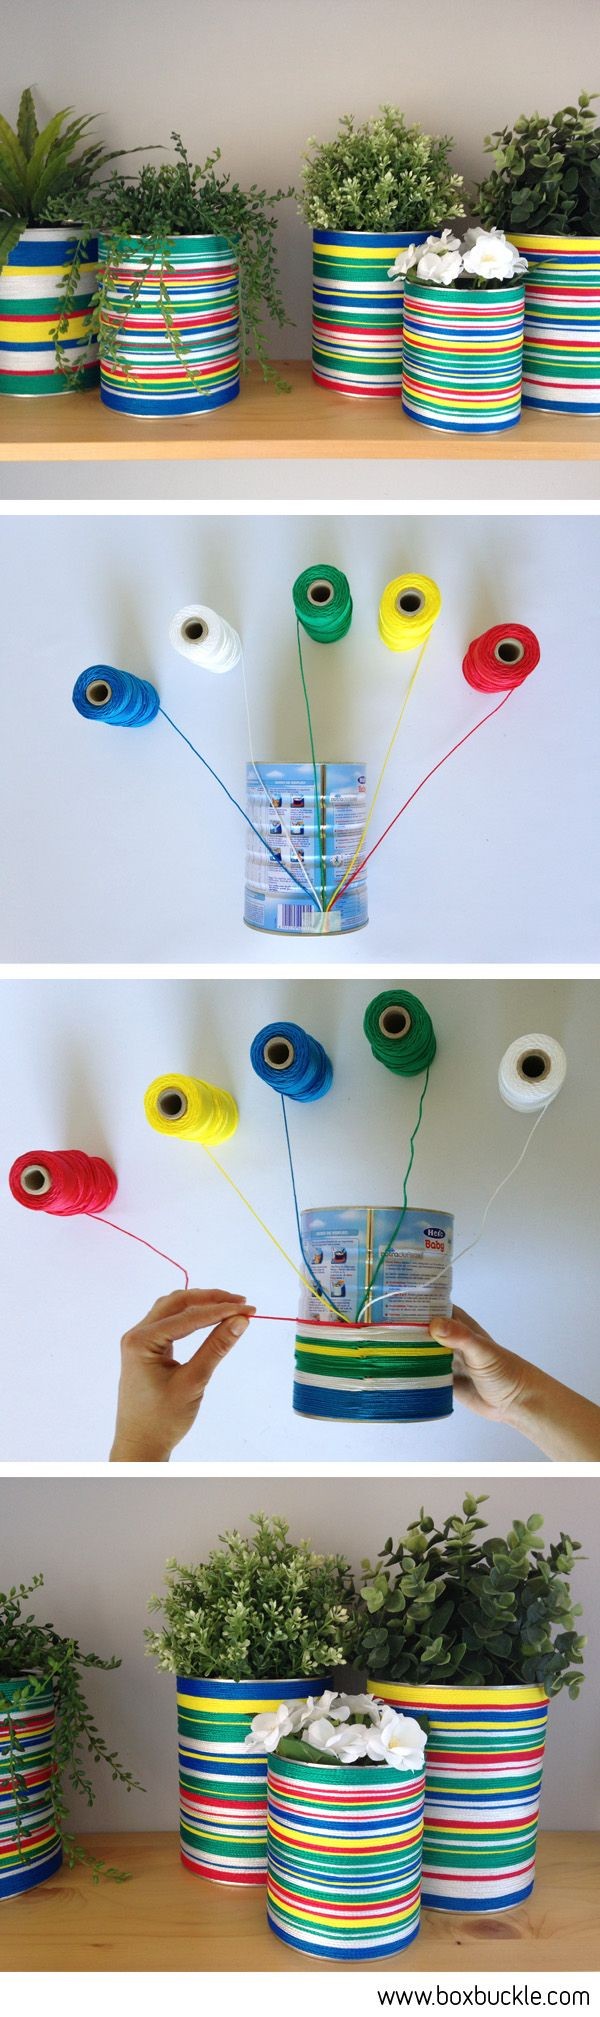 DIY TUTORIAL, bote de leche infantil forrado con cordeles de colores (idea de DAMA design) colored tin can planters with strings                                                                                                                                                                                 Más